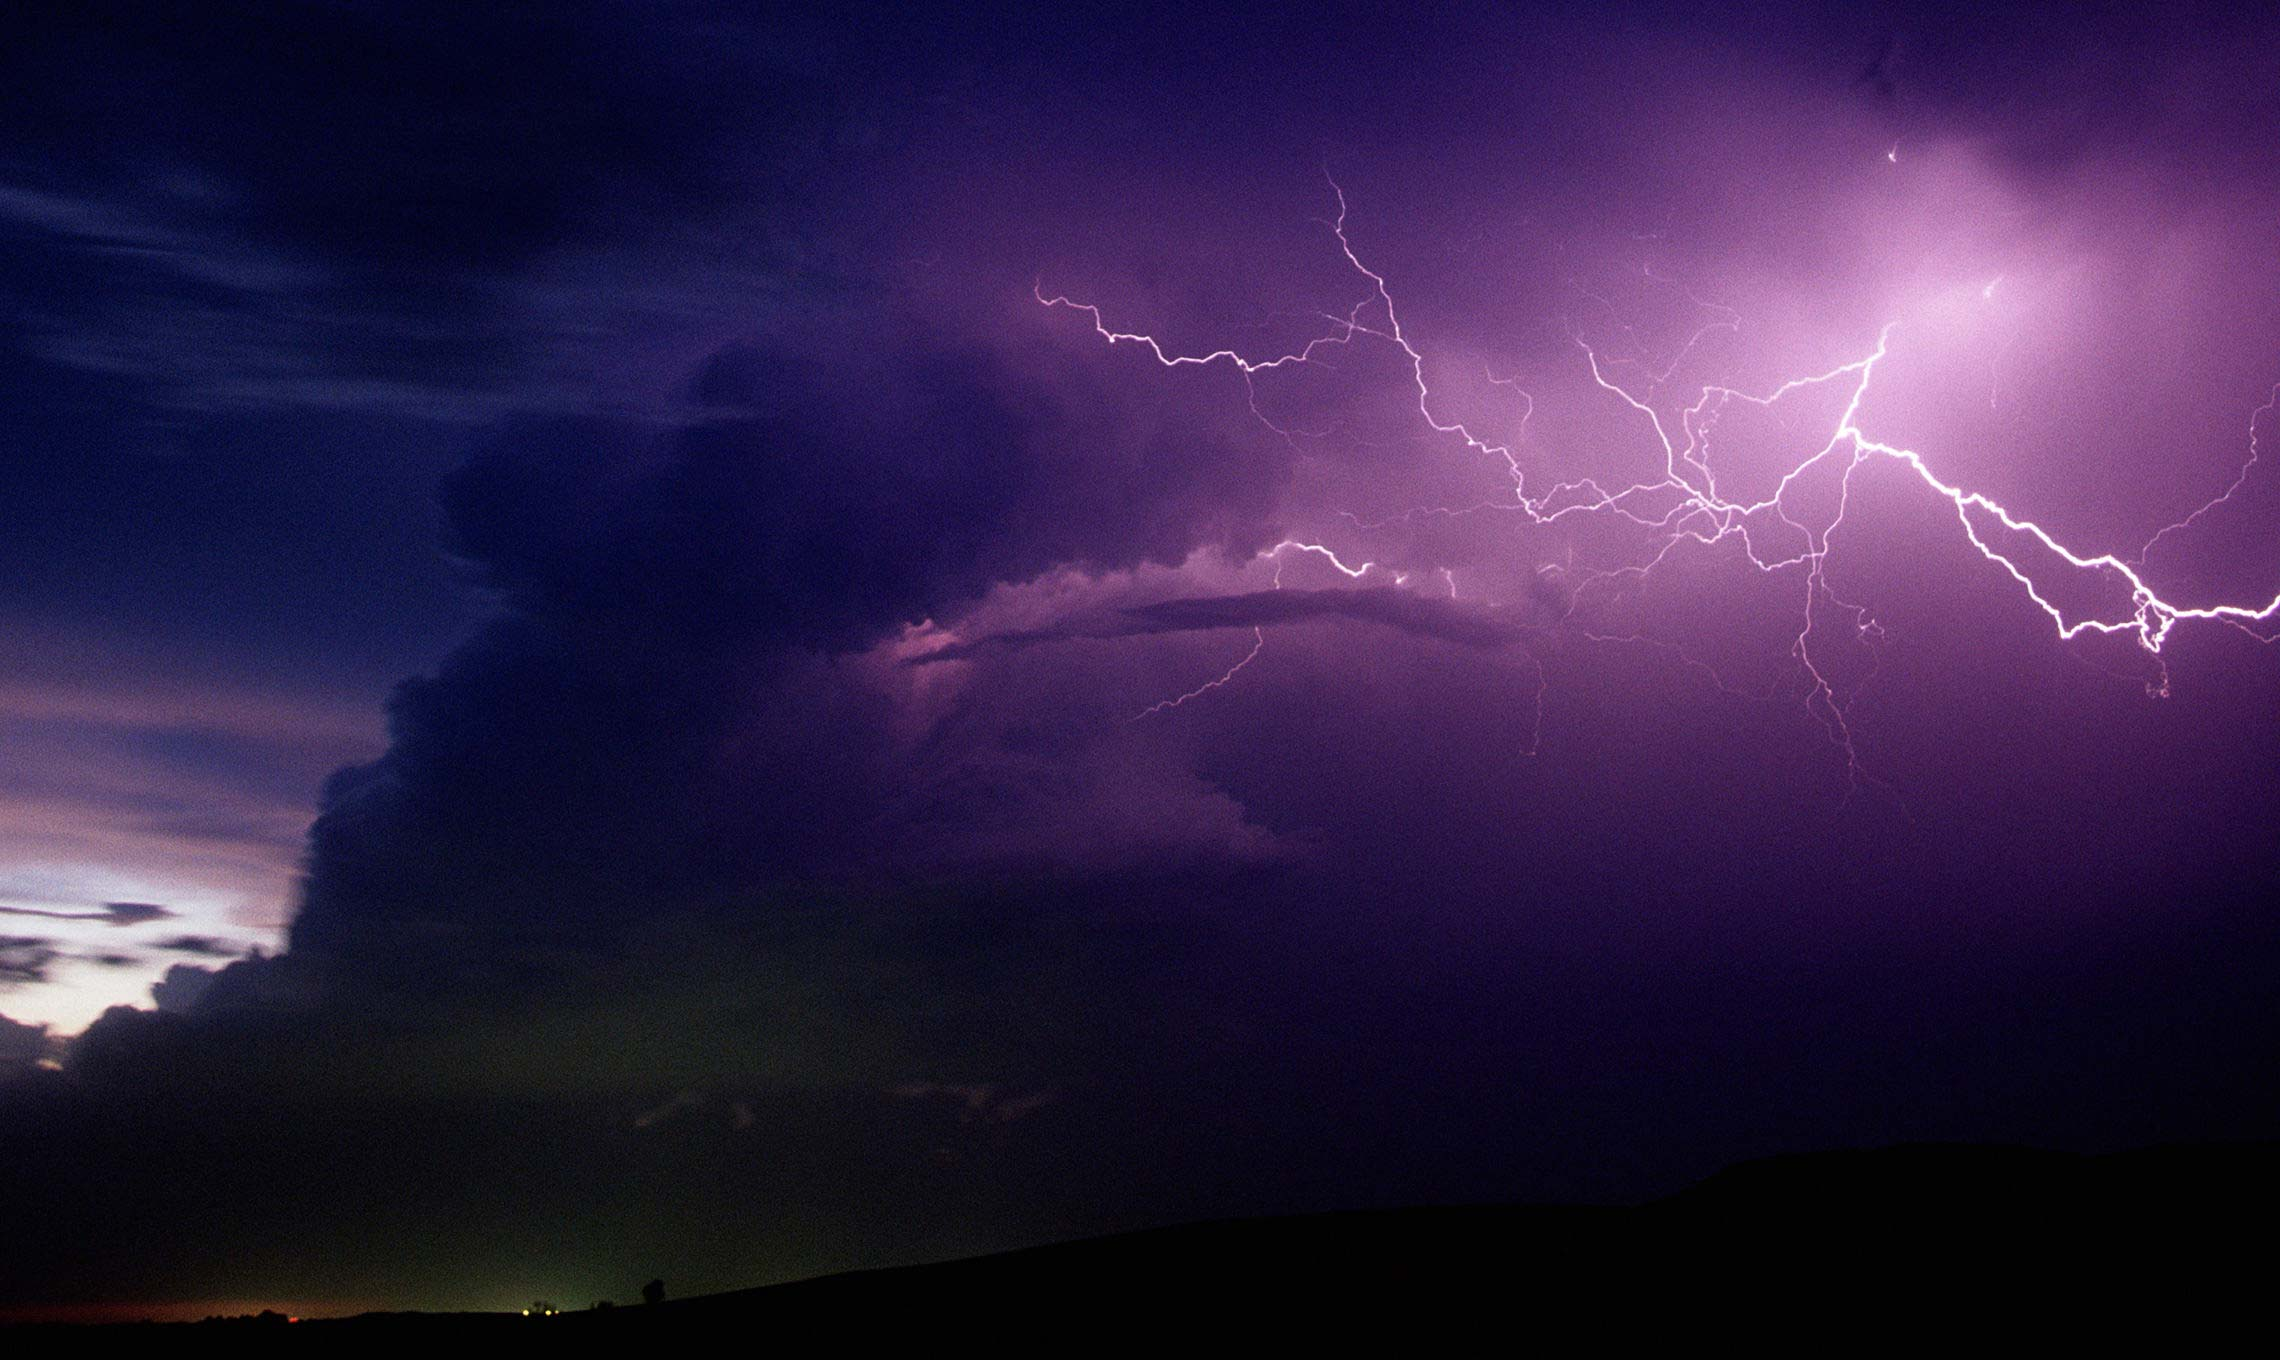 1920x1080 Wallpaper Quote Sharing Storms Taken By Storm